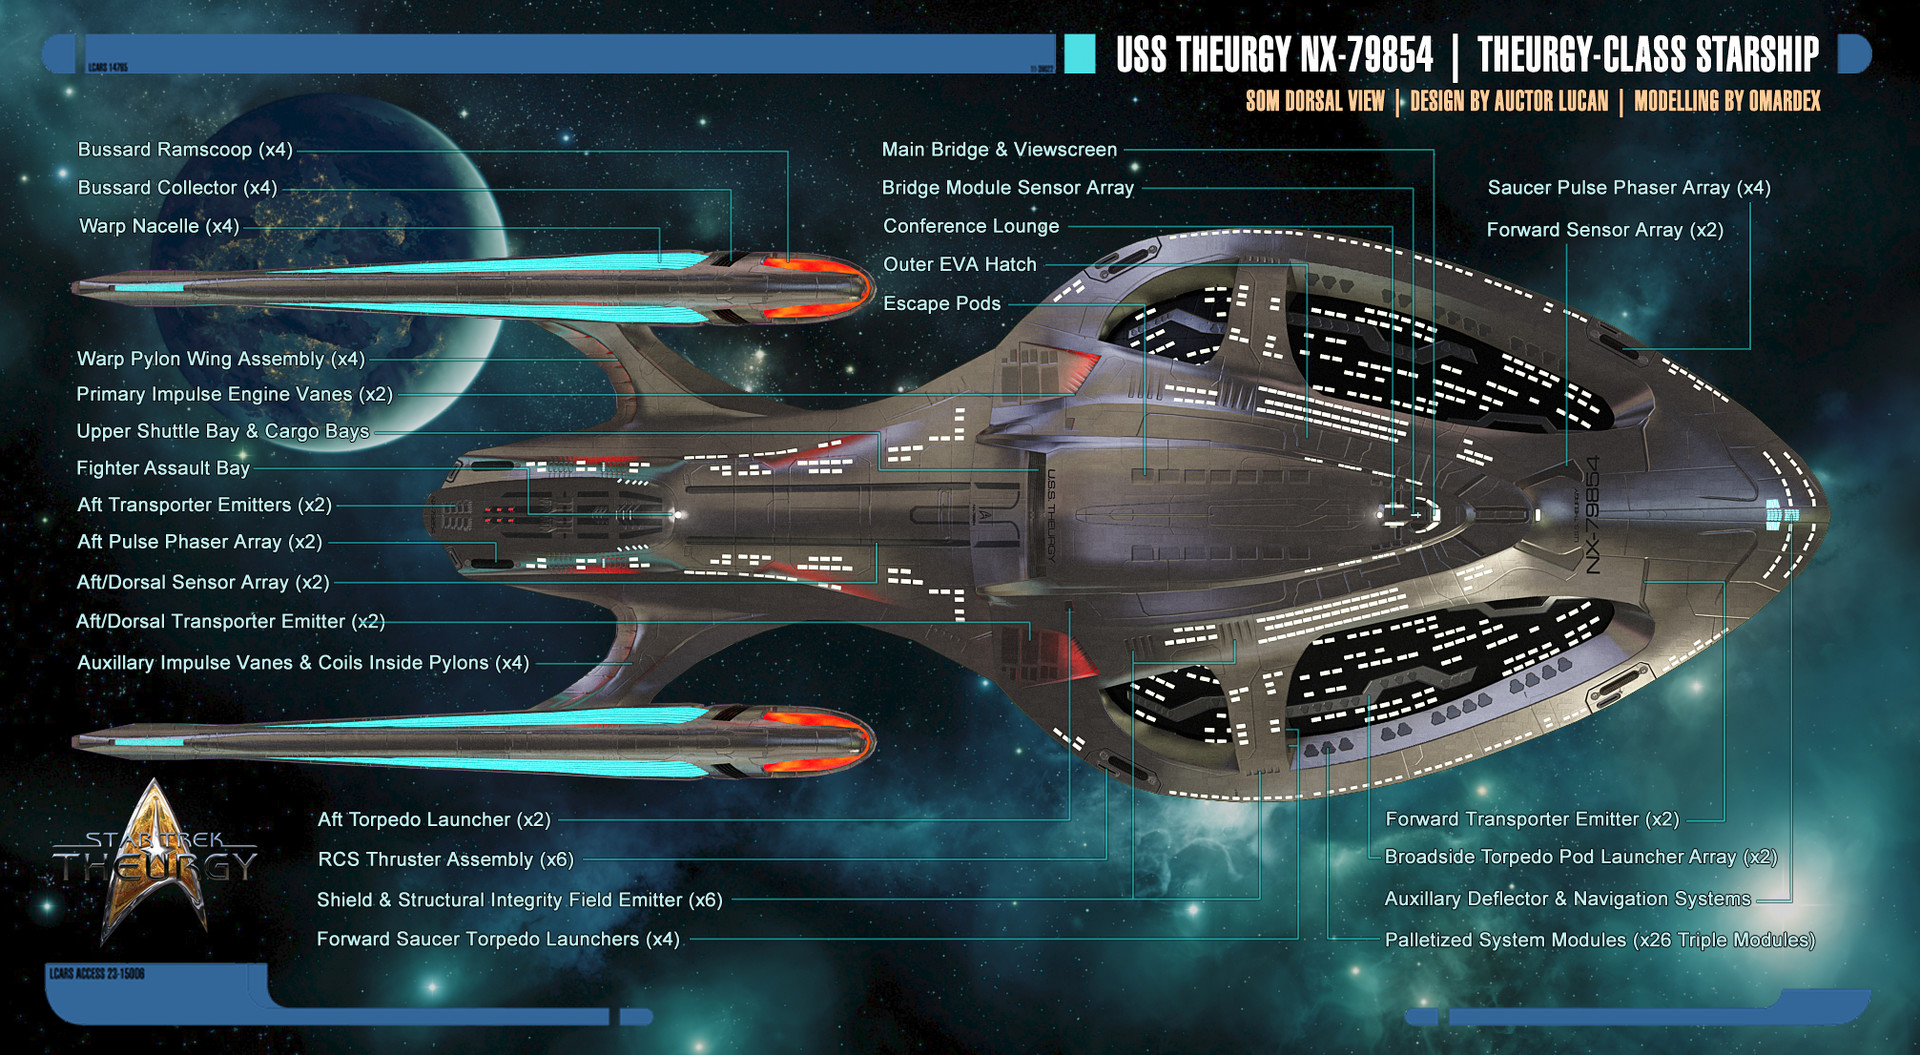 Auctor Lucan Theurgy Class Starship Schematics Aviation Engineering Dorsal View